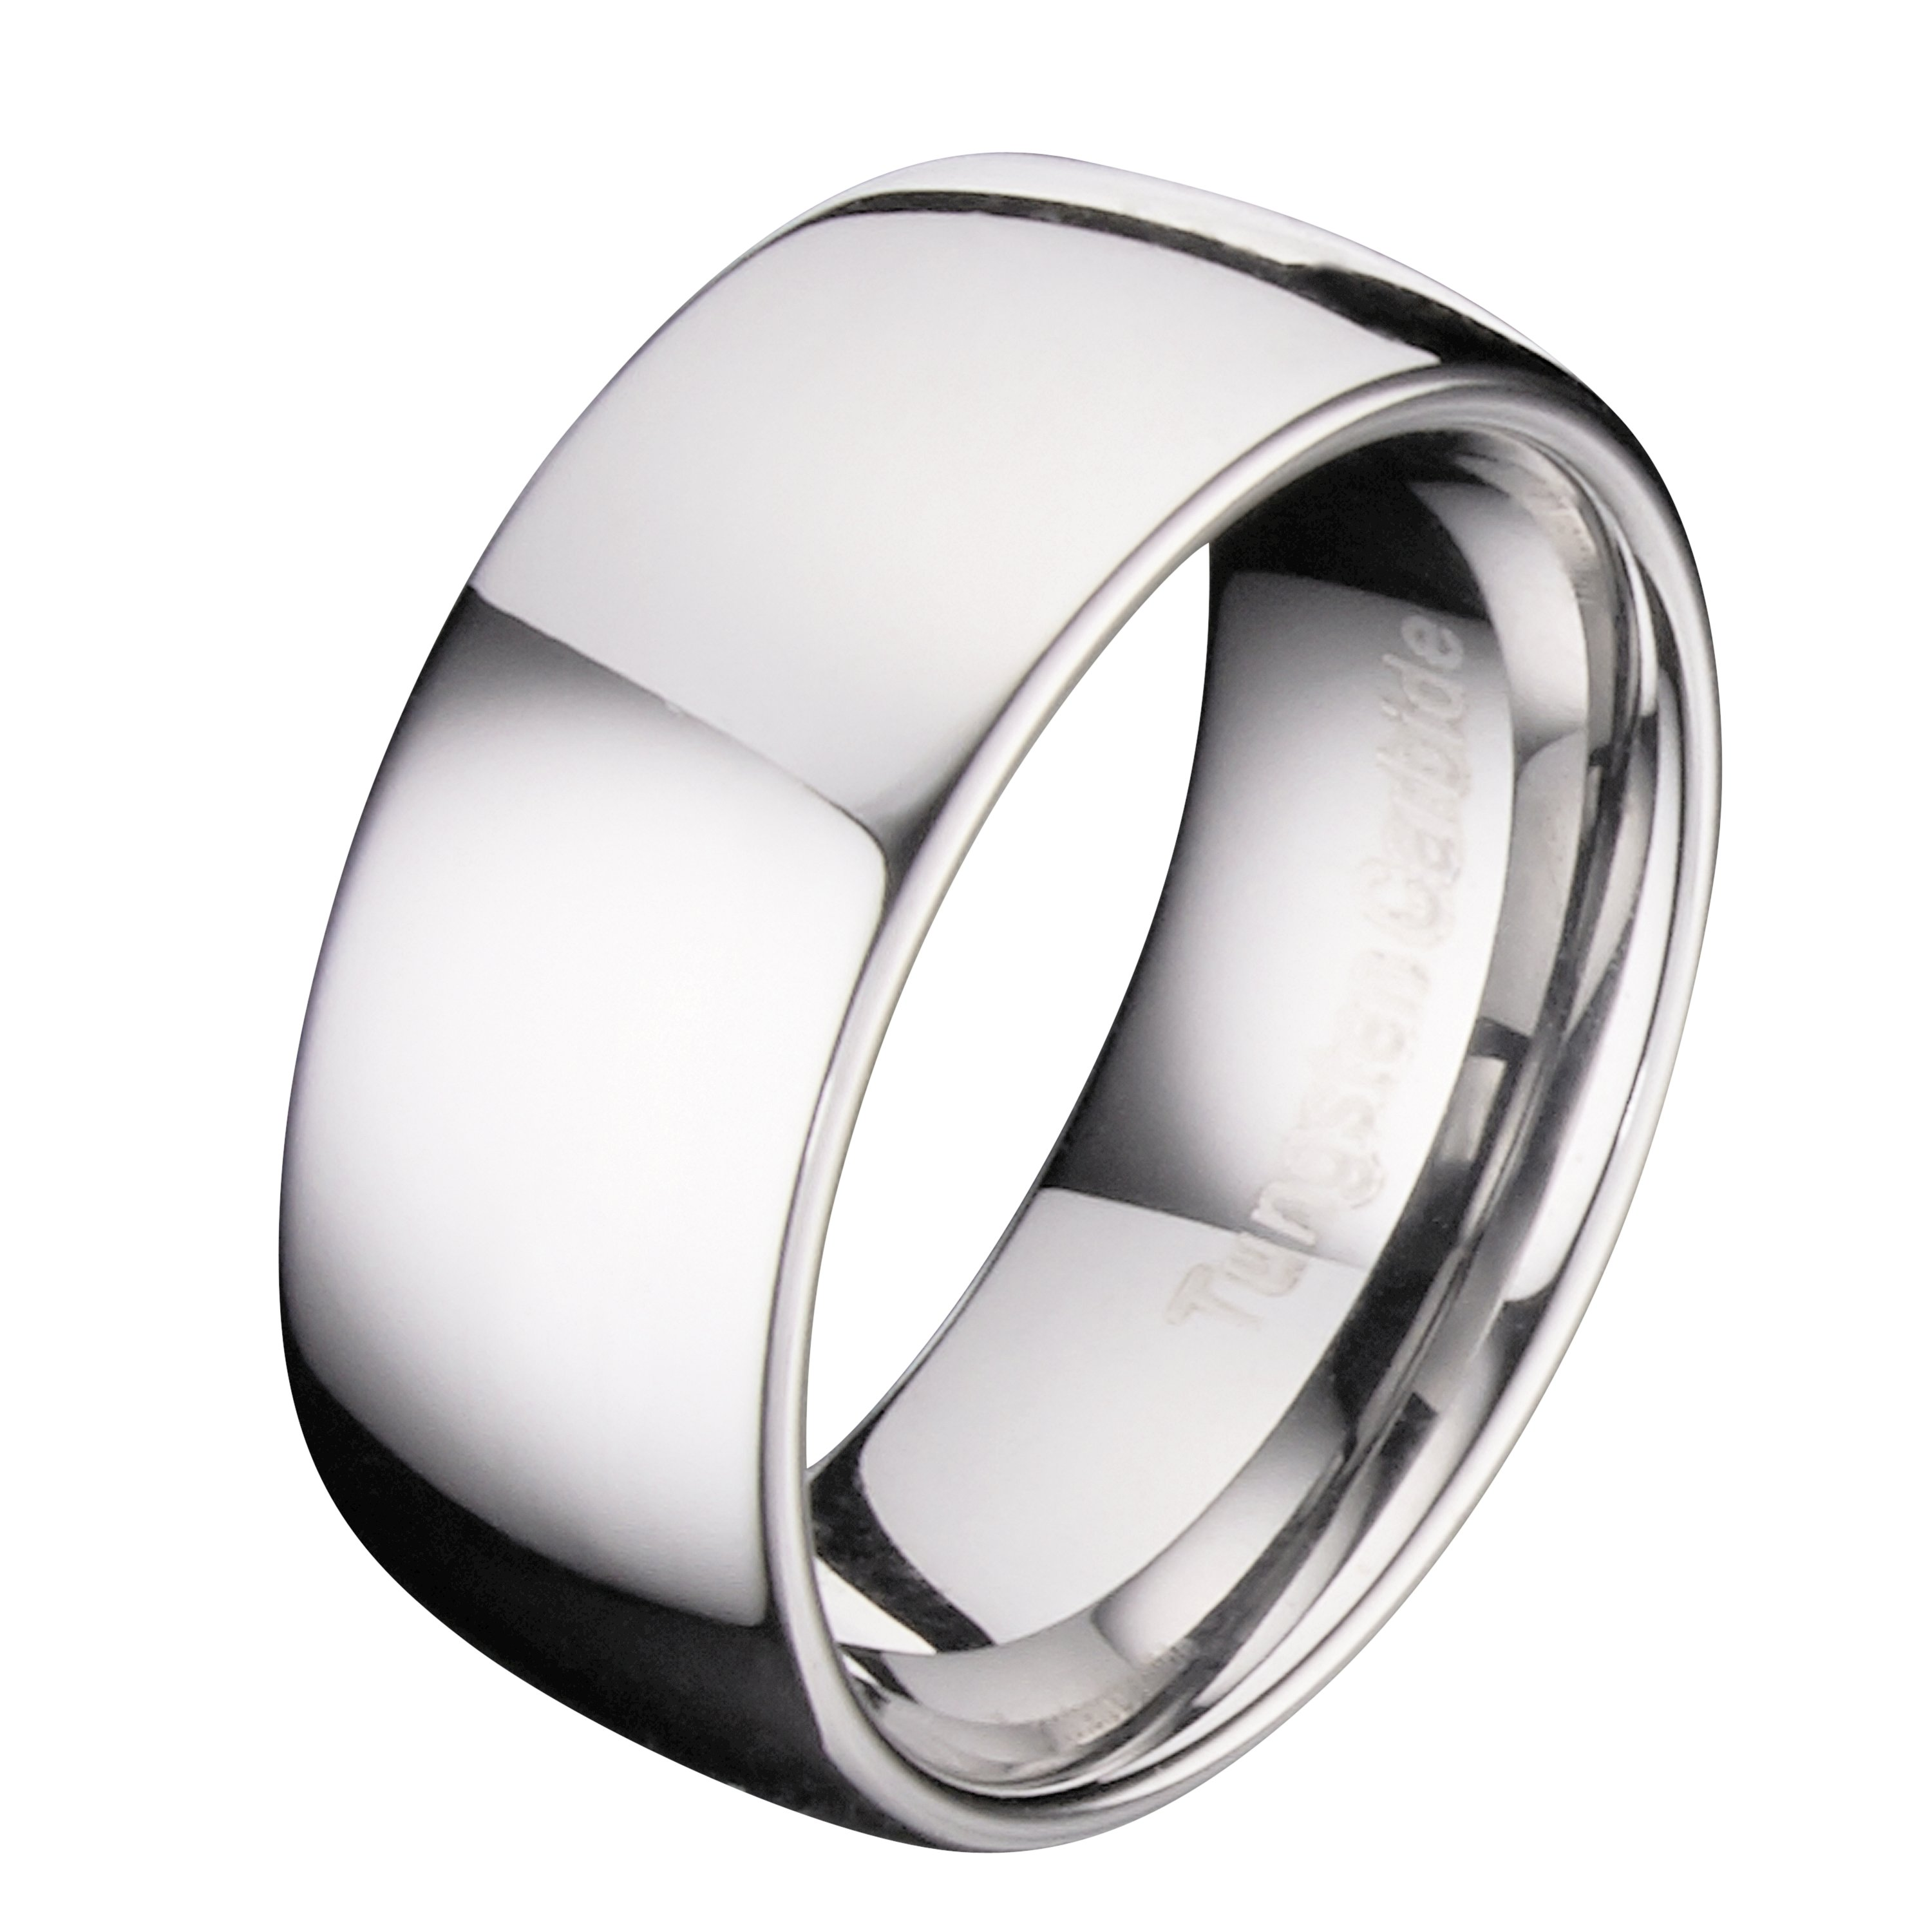 Custom-Engraving-Tungsten-Carbide-Classic-Wedding-Ring-Polished-3mm-to-10mm-Band thumbnail 7